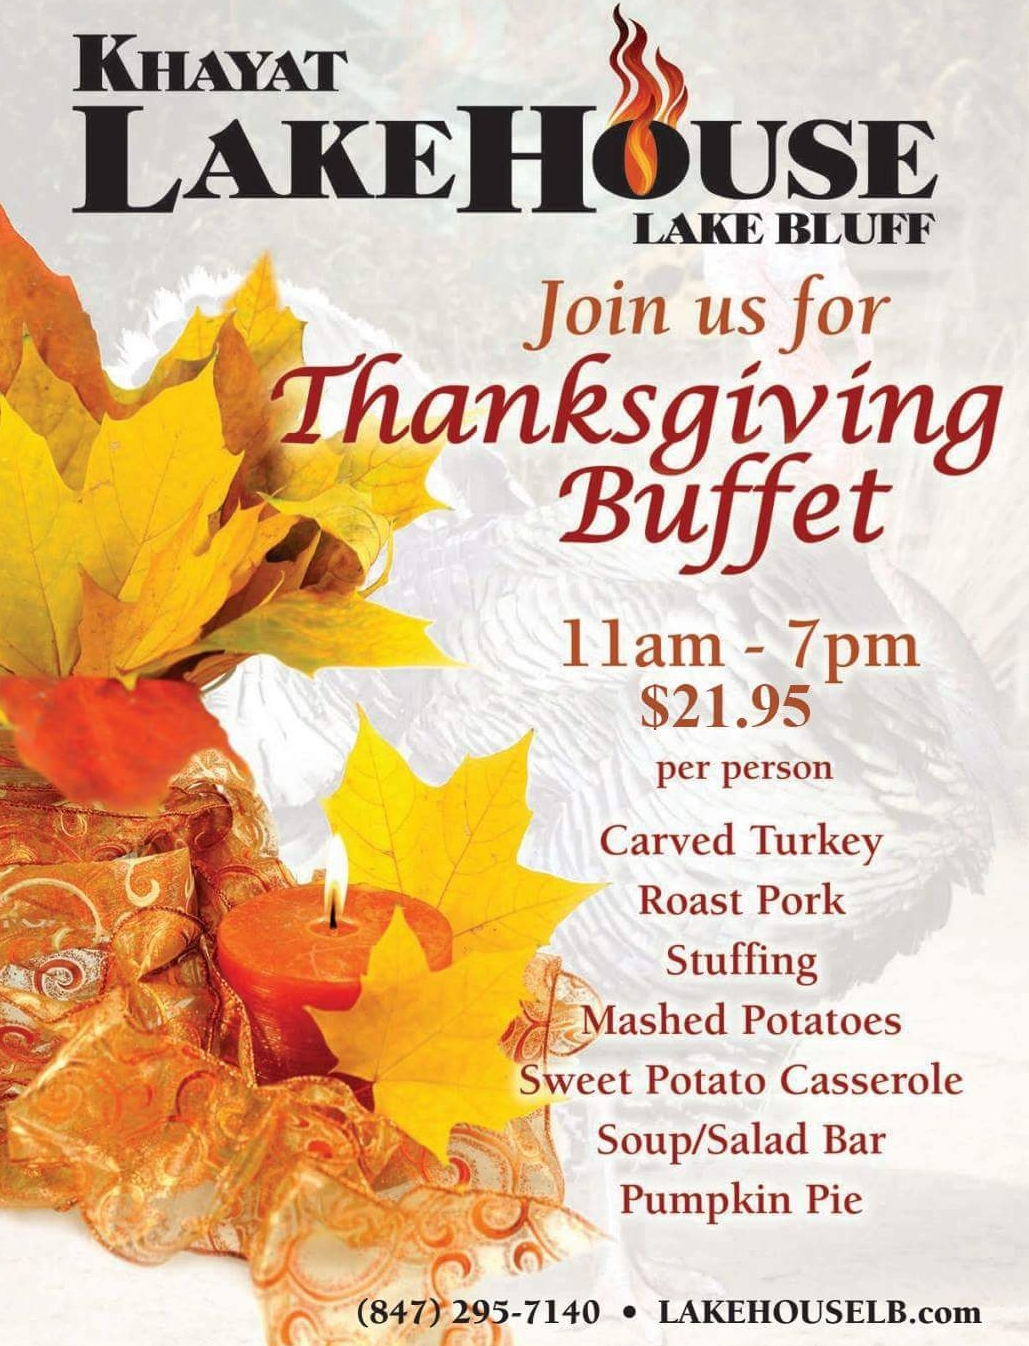 Thanksgiving Buffet at LakeHouse Lake Bluff 2018